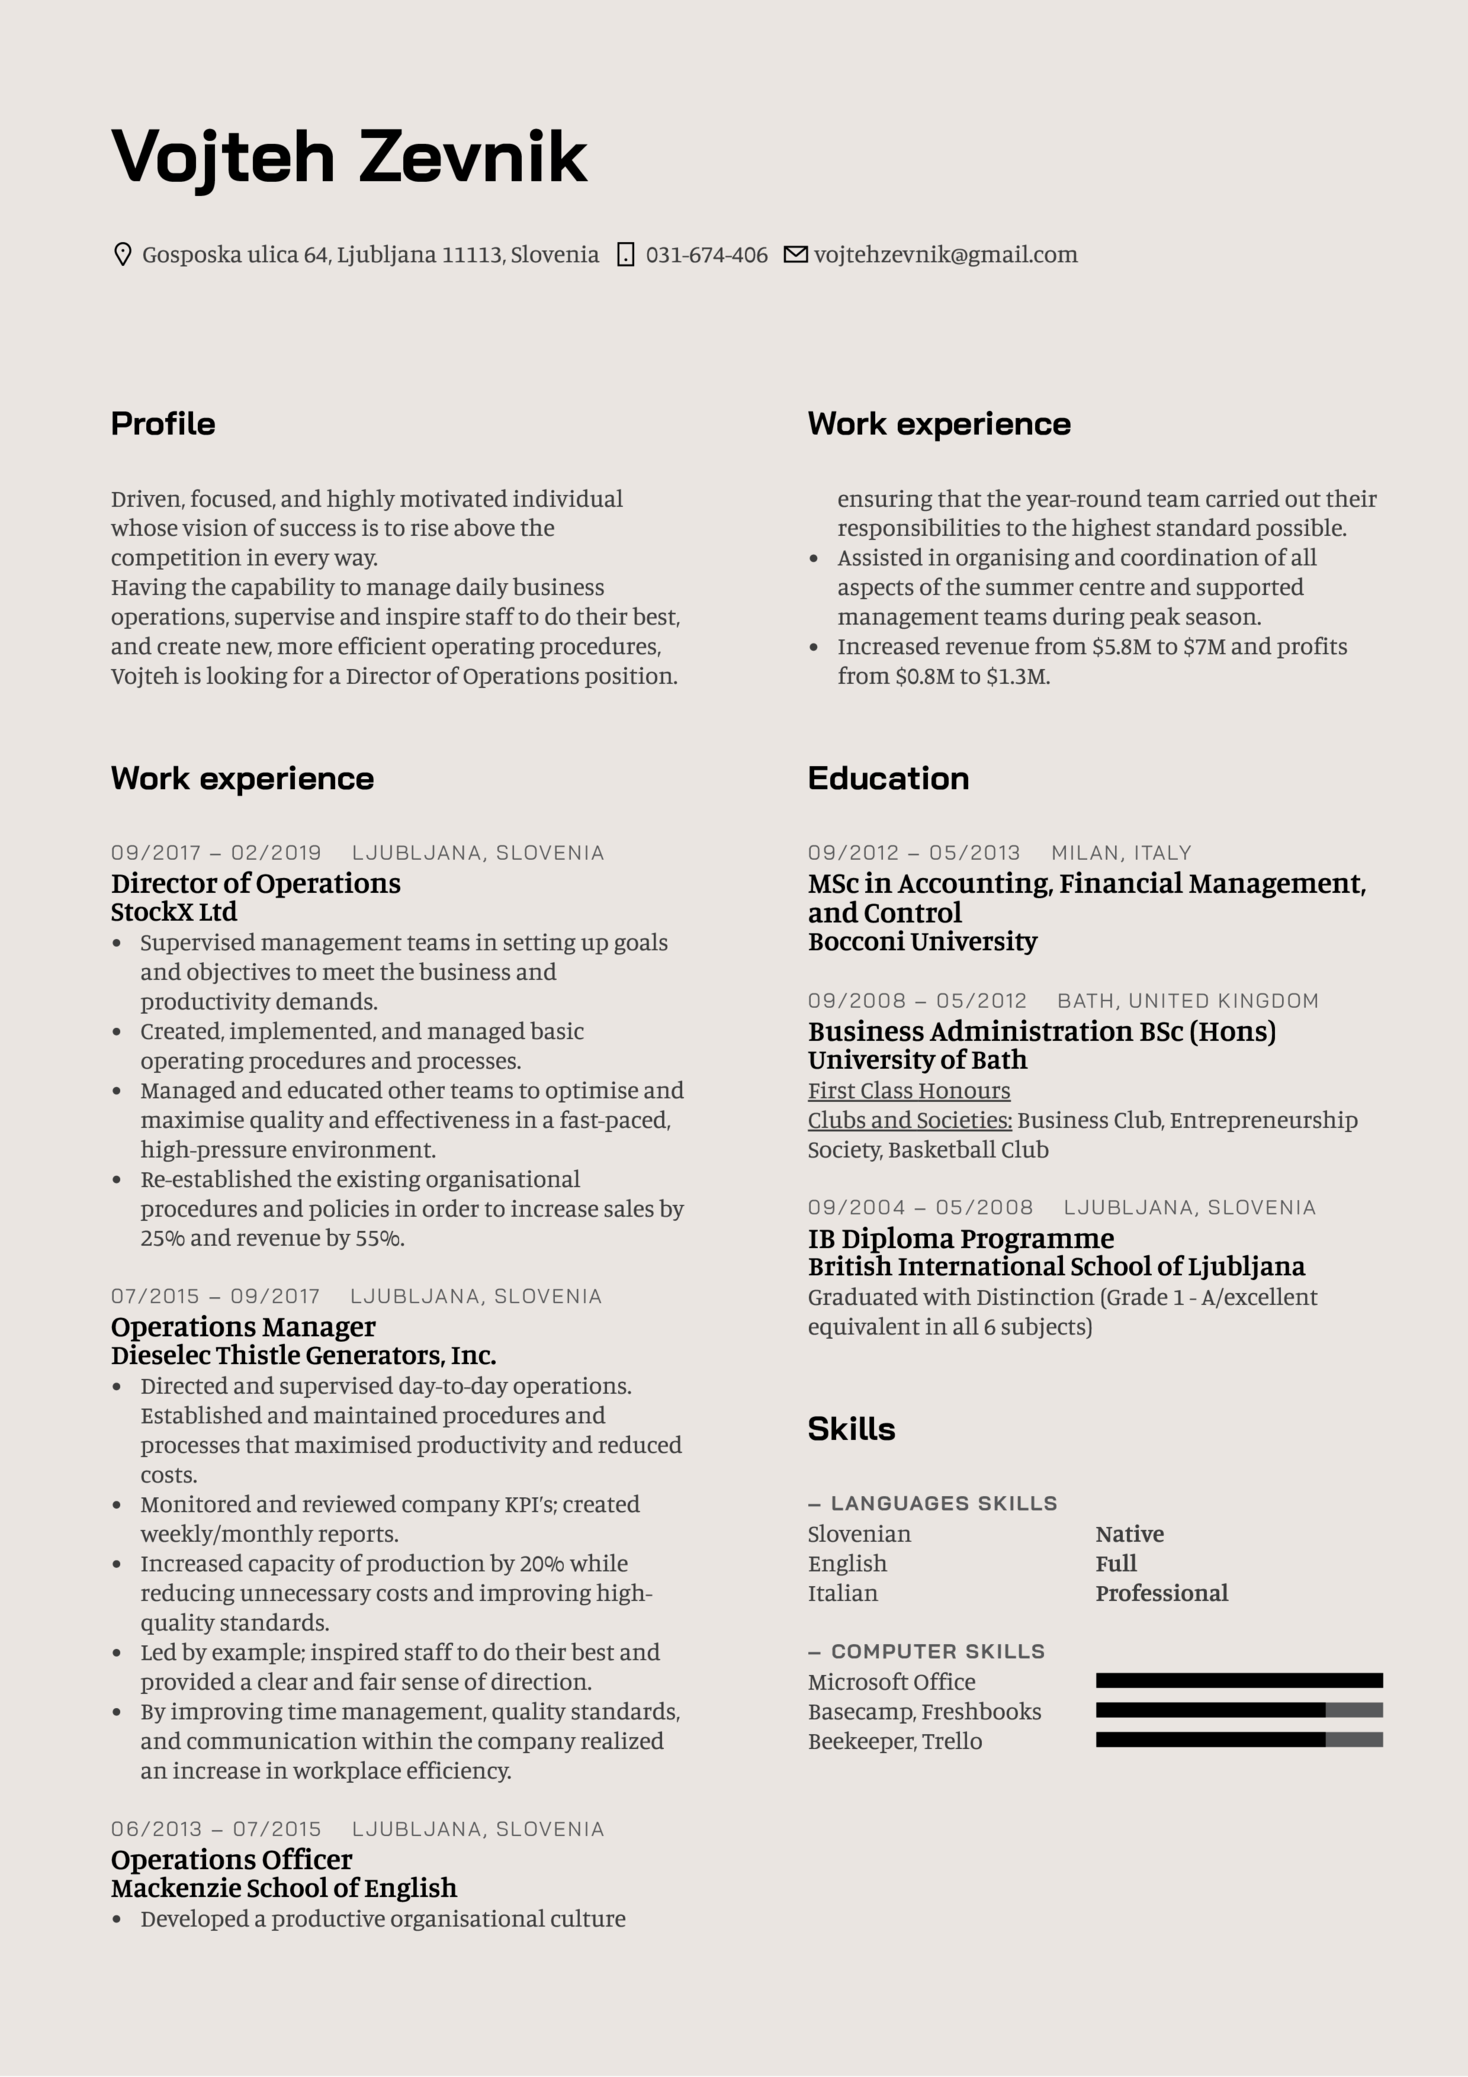 Director of Operations Resume Template (Teil 1)